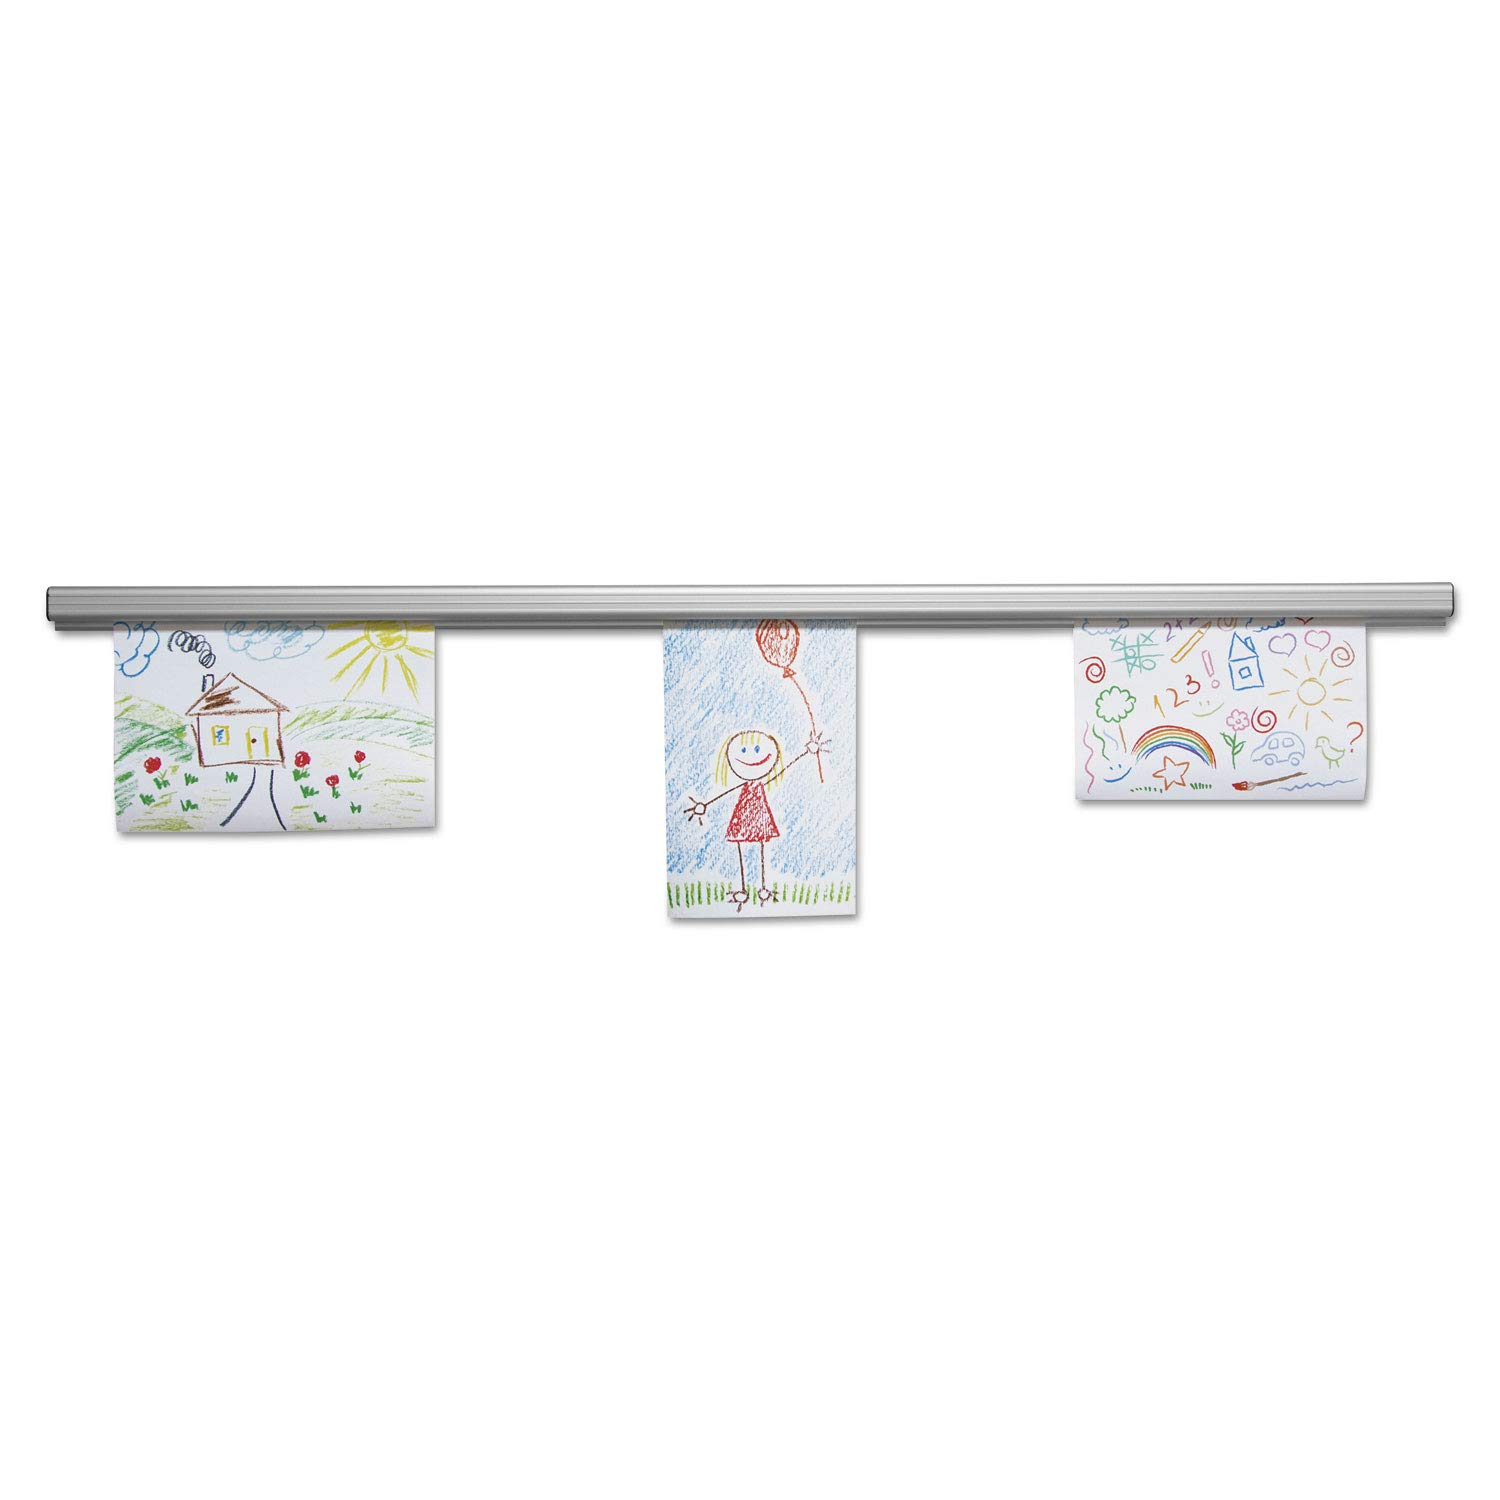 Advantus 2010 Grip-A-Strip Display Rail, 48 x 1 1/2, Aluminum Finish